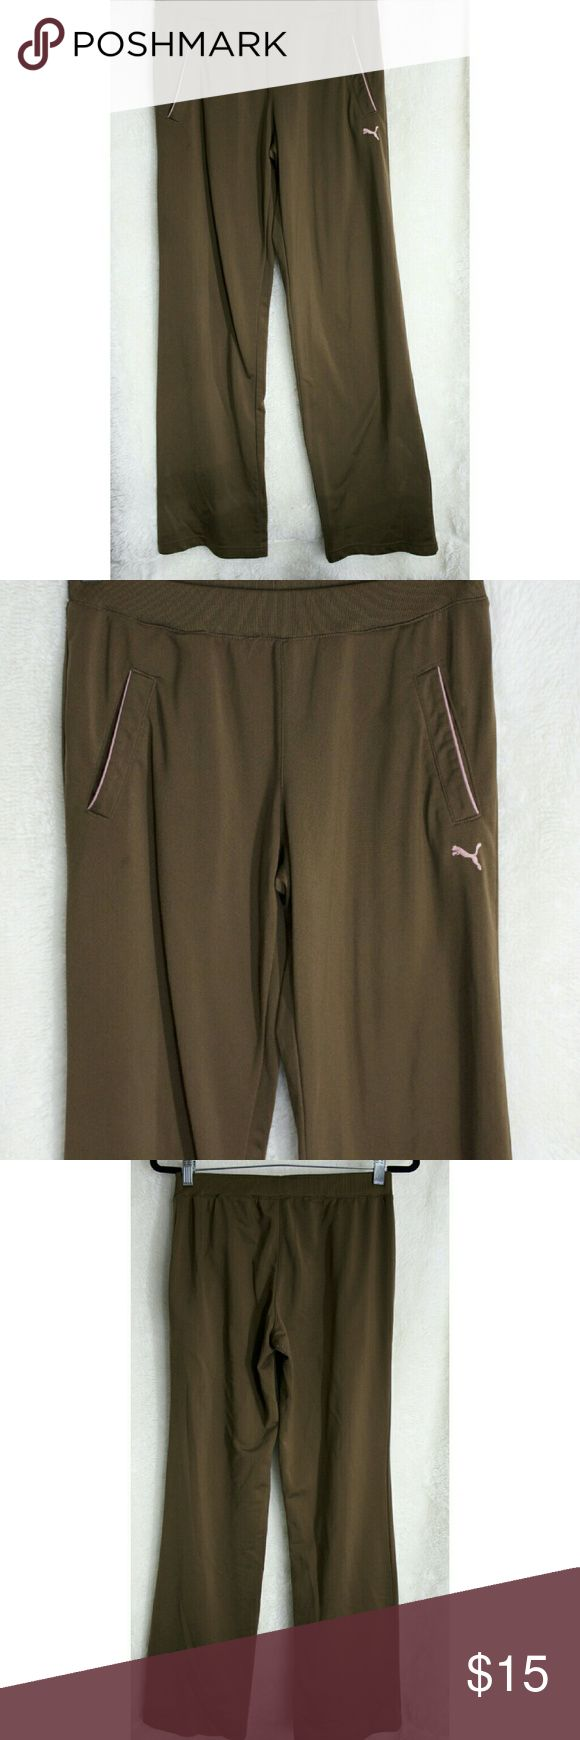 Puma women track pants Wide leg Track pants in great shape. Very soft and comfortable. Perfect to run errands on. Puma Pants Track Pants & Joggers